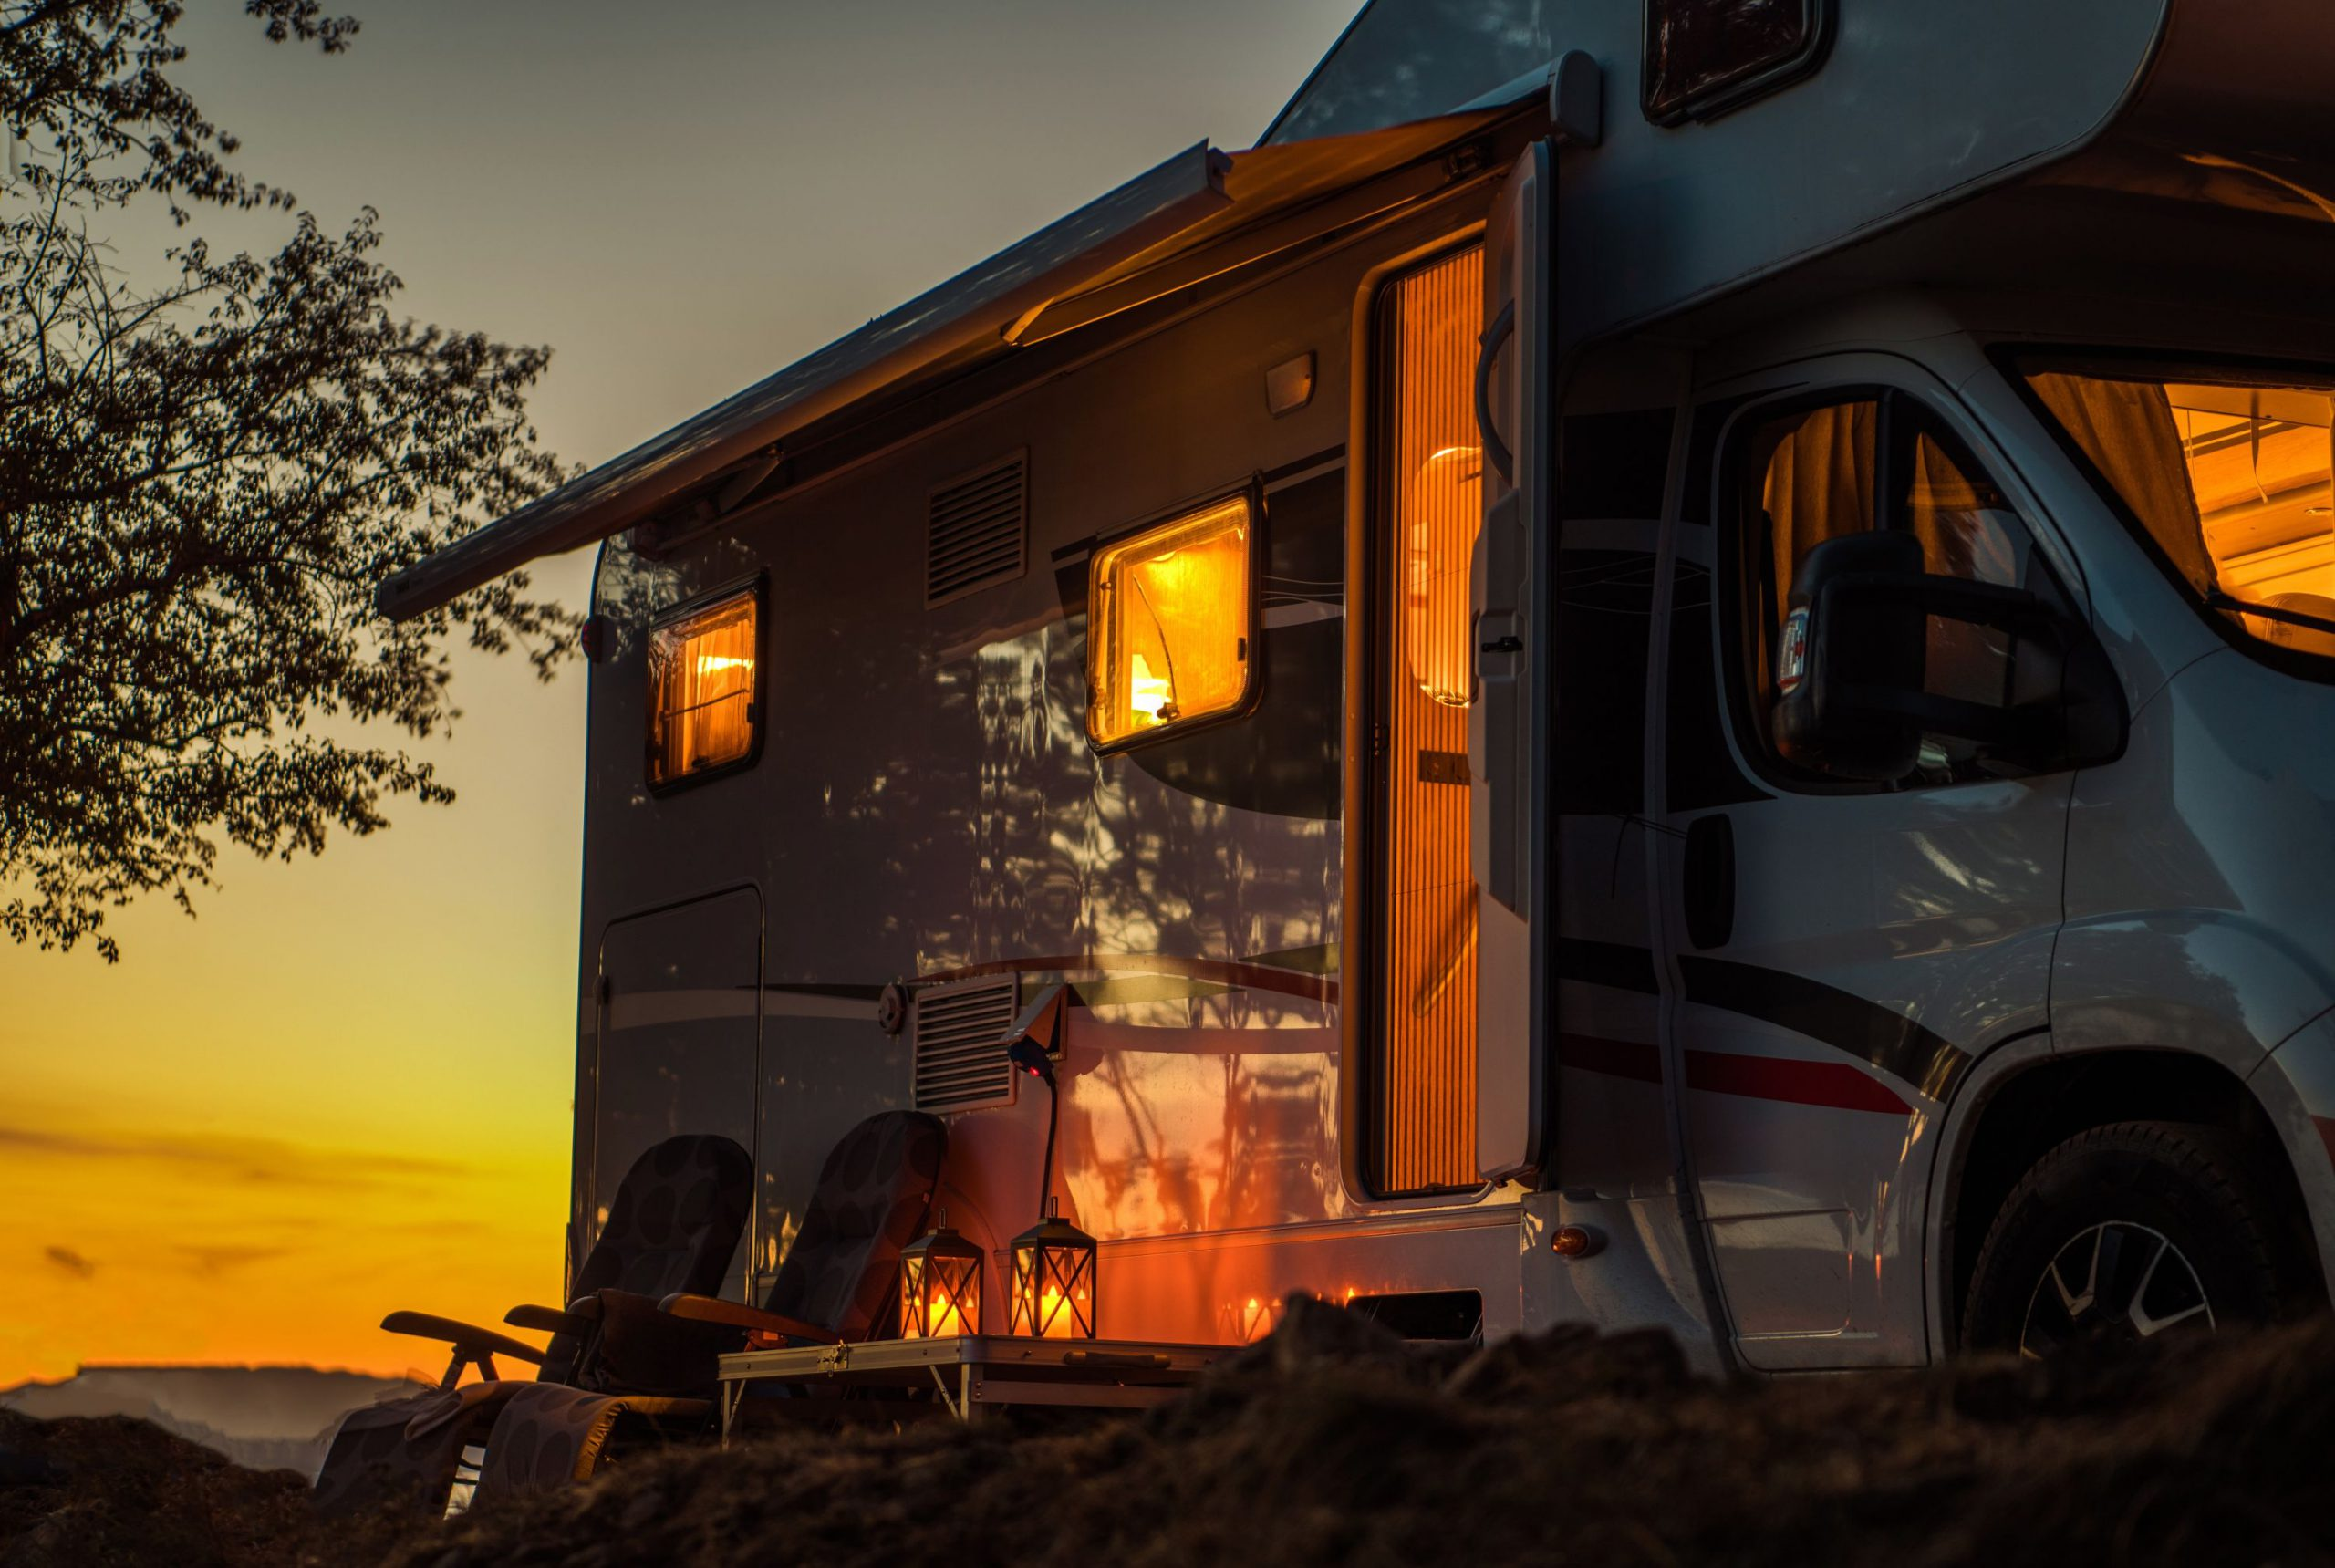 assurance roulotte fifth wheel quebec